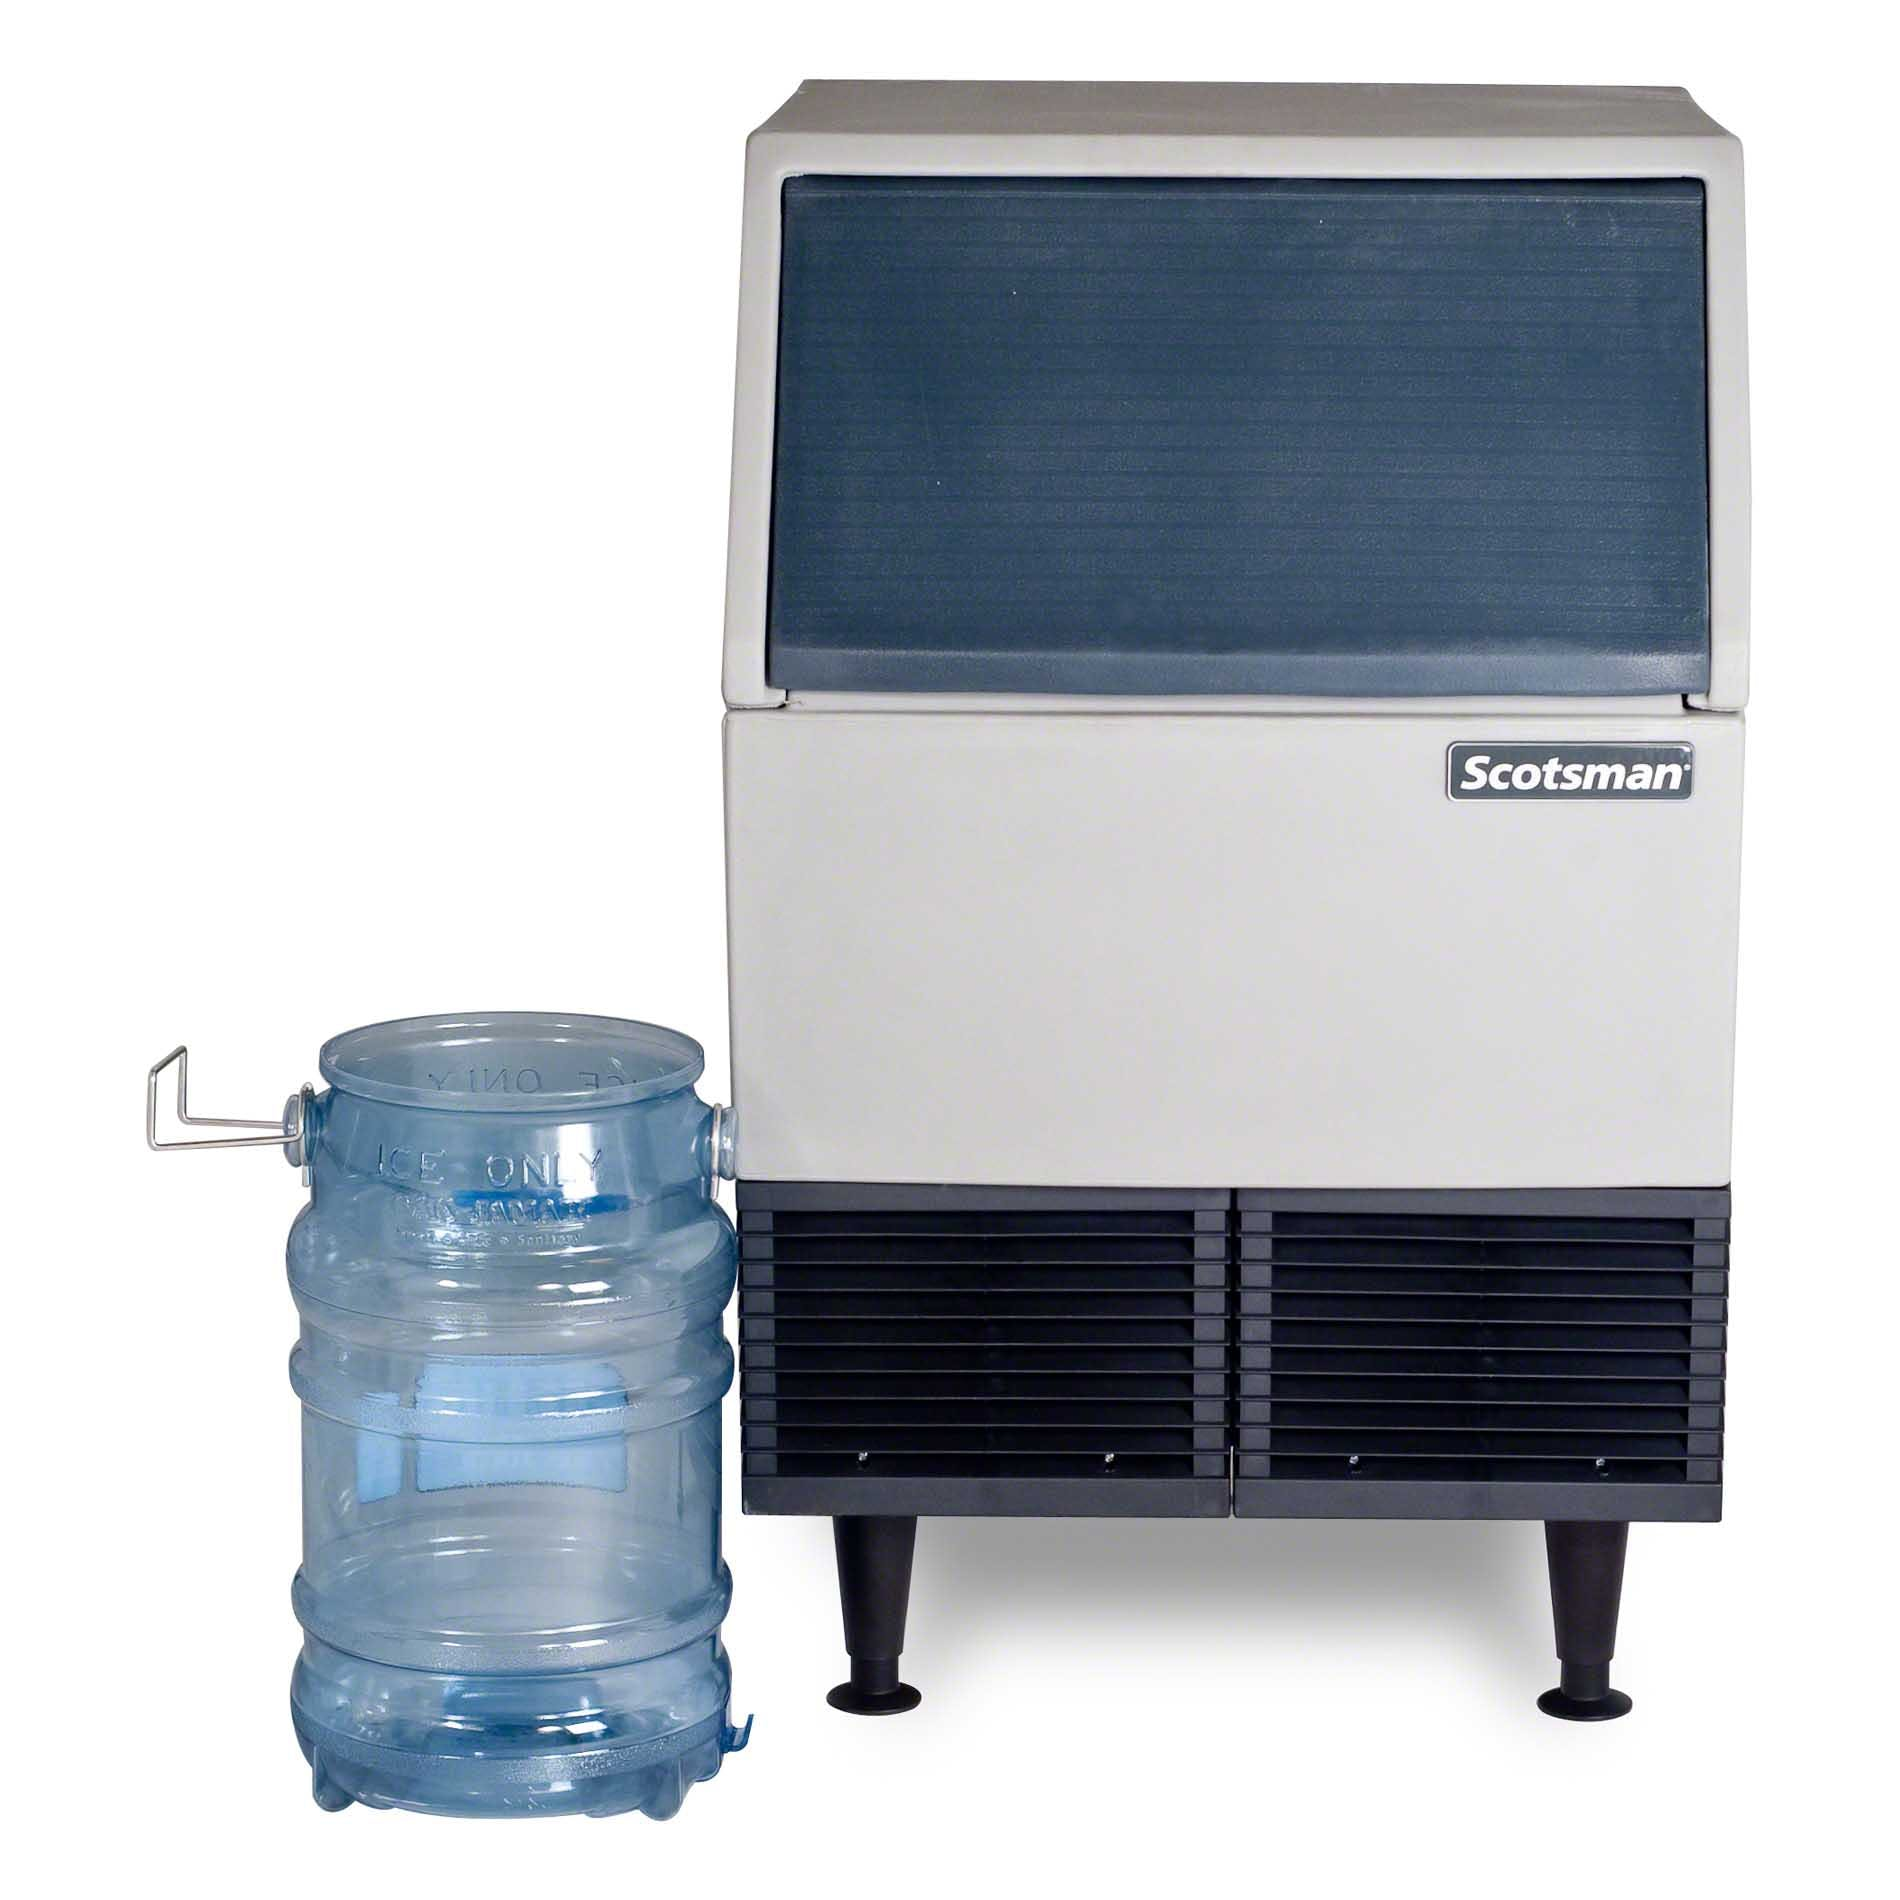 Scotsman - AFE424A-1A 395 lb Self-Contained Flake Ice Machine w/ Storage Ice machine sold by Food Service Warehouse